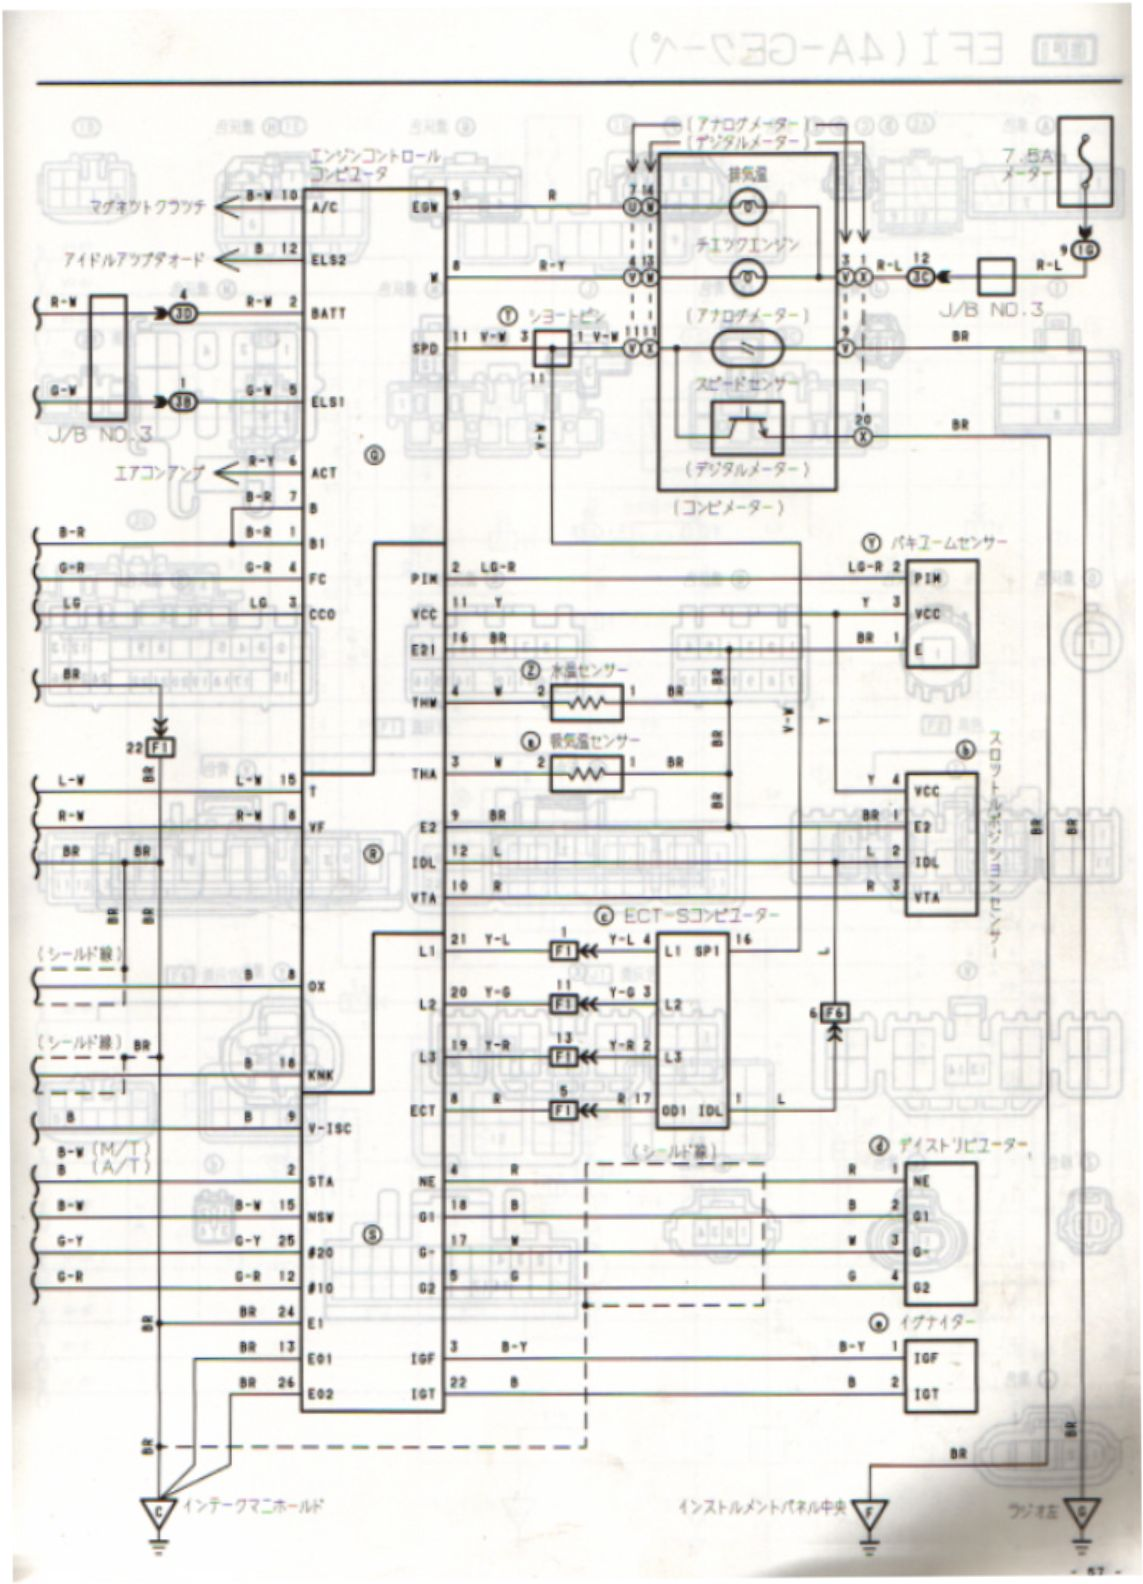 4age wiring diagram efcaviation com toyota 4age wiring diagram at eliteediting.co